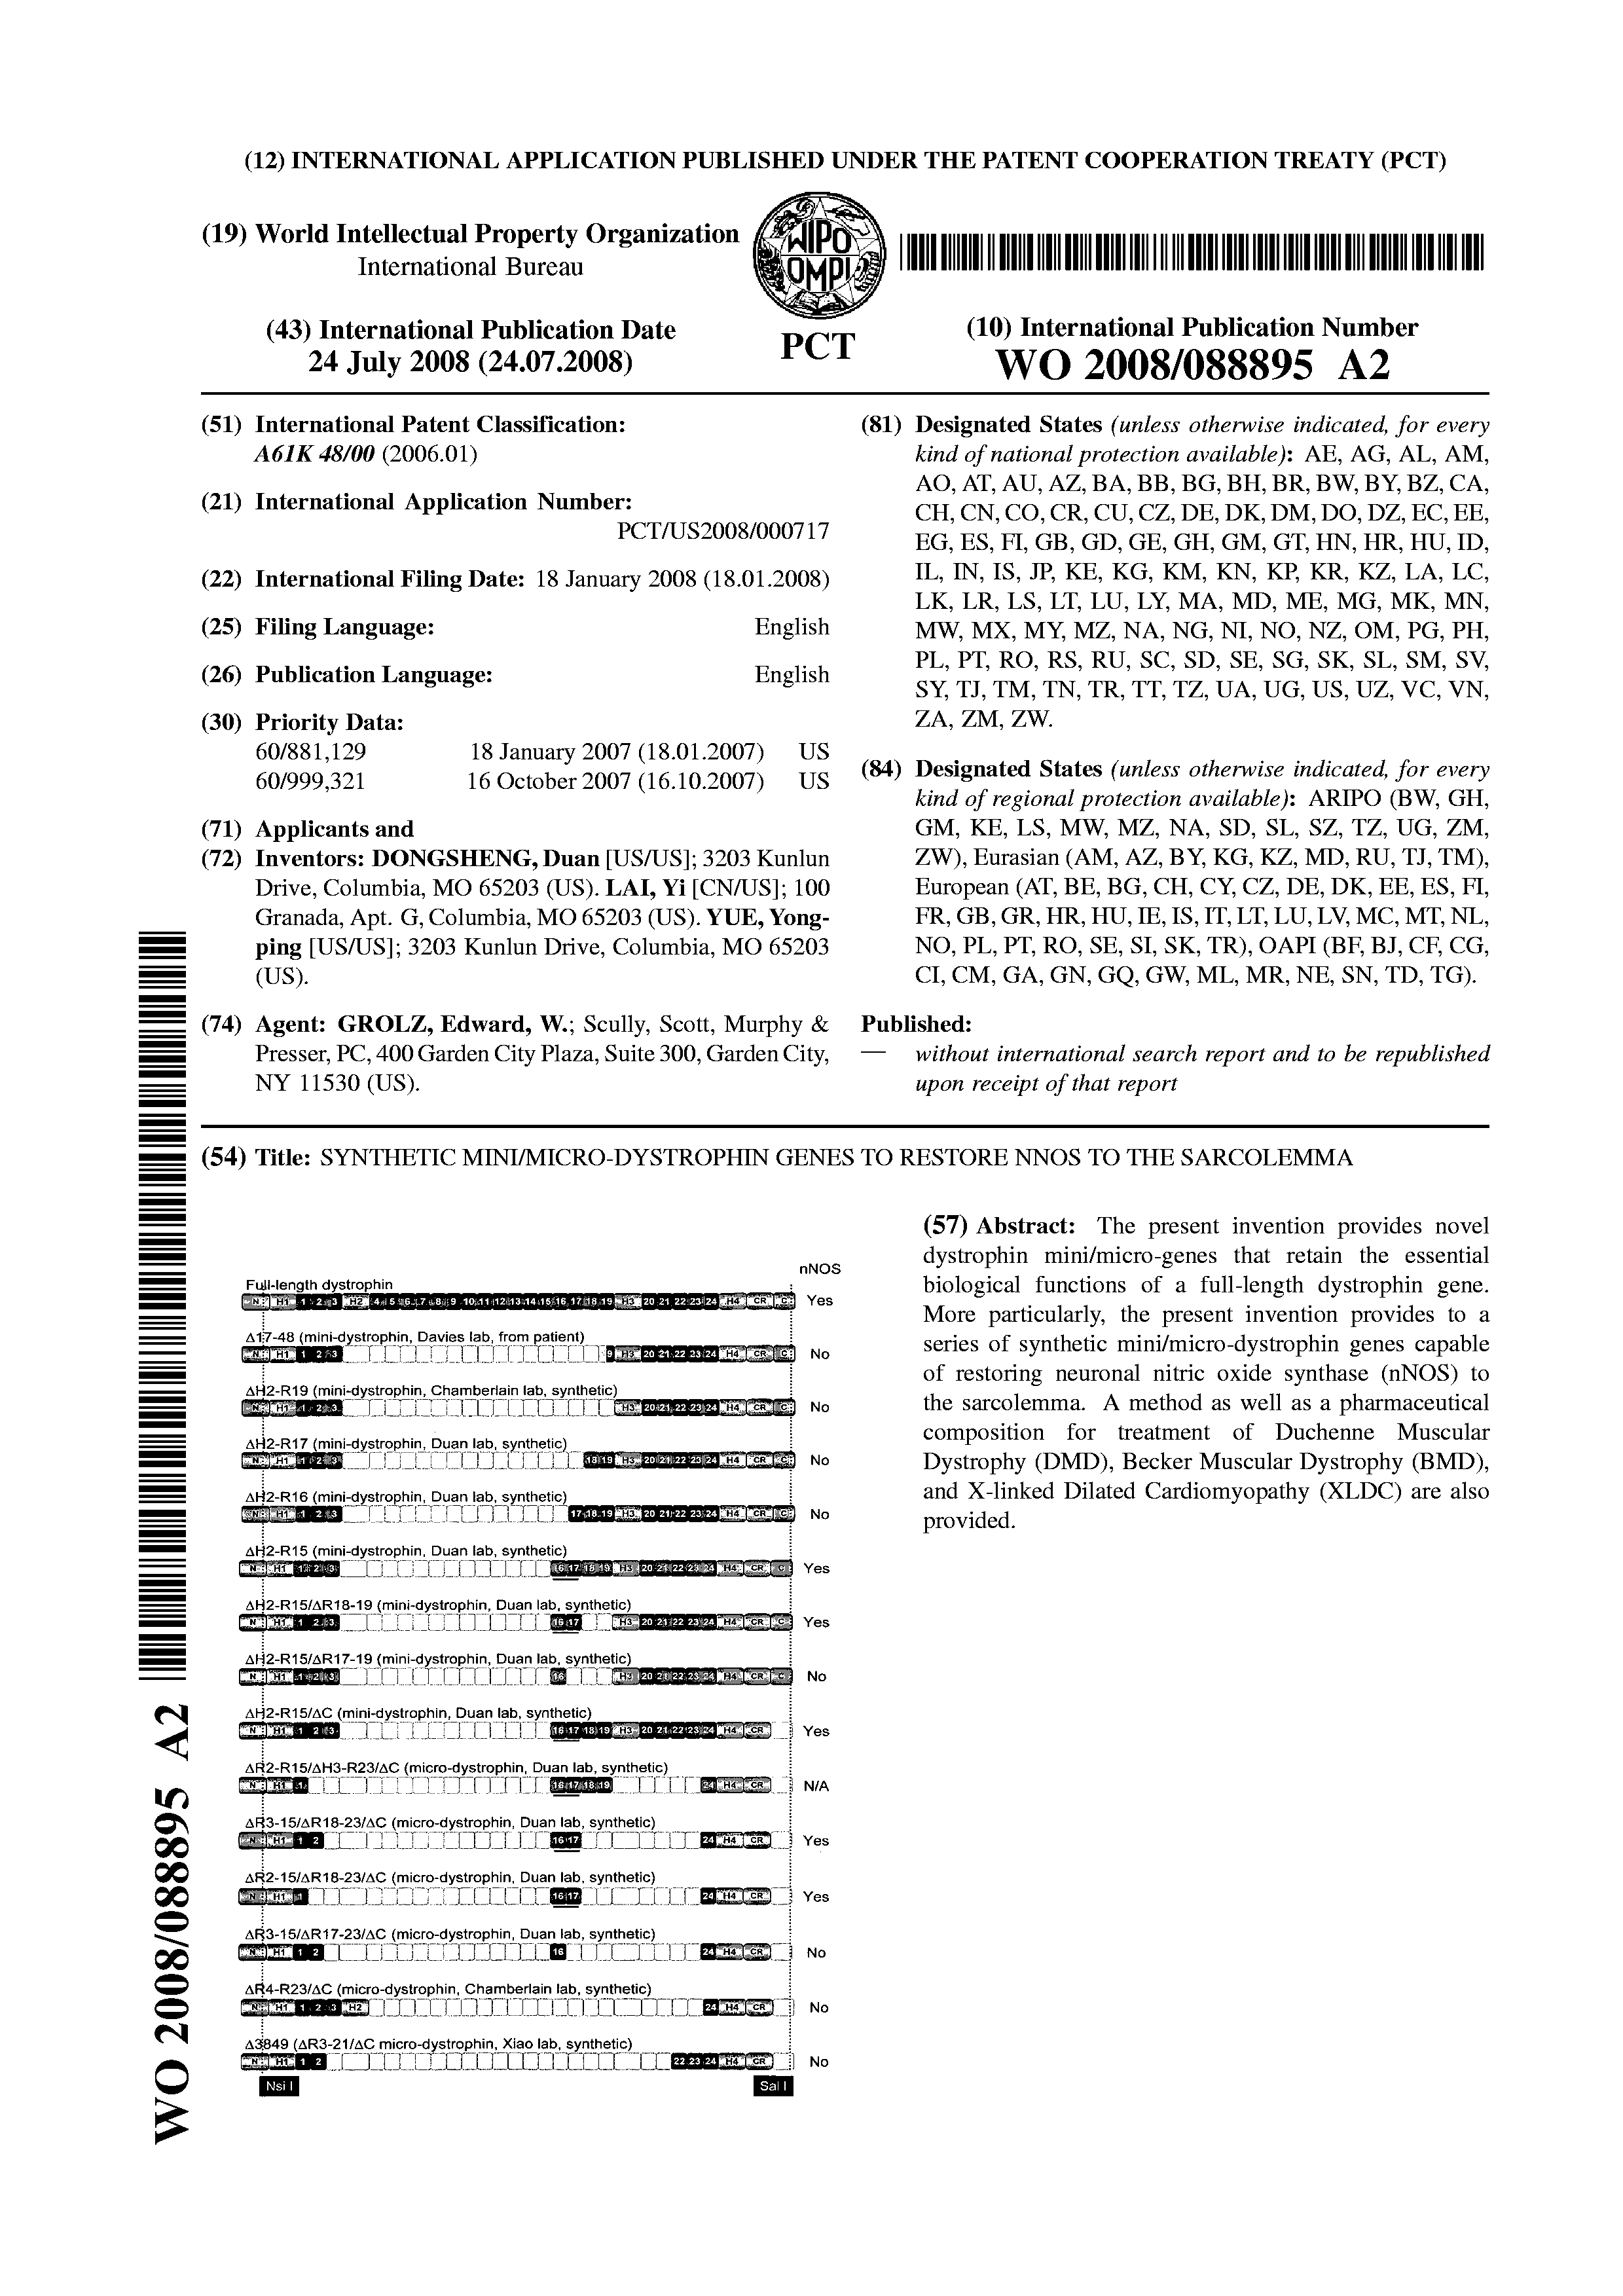 WO 2008/088895 A2 - Synthetic Mini/micro-dystrophin Genes To